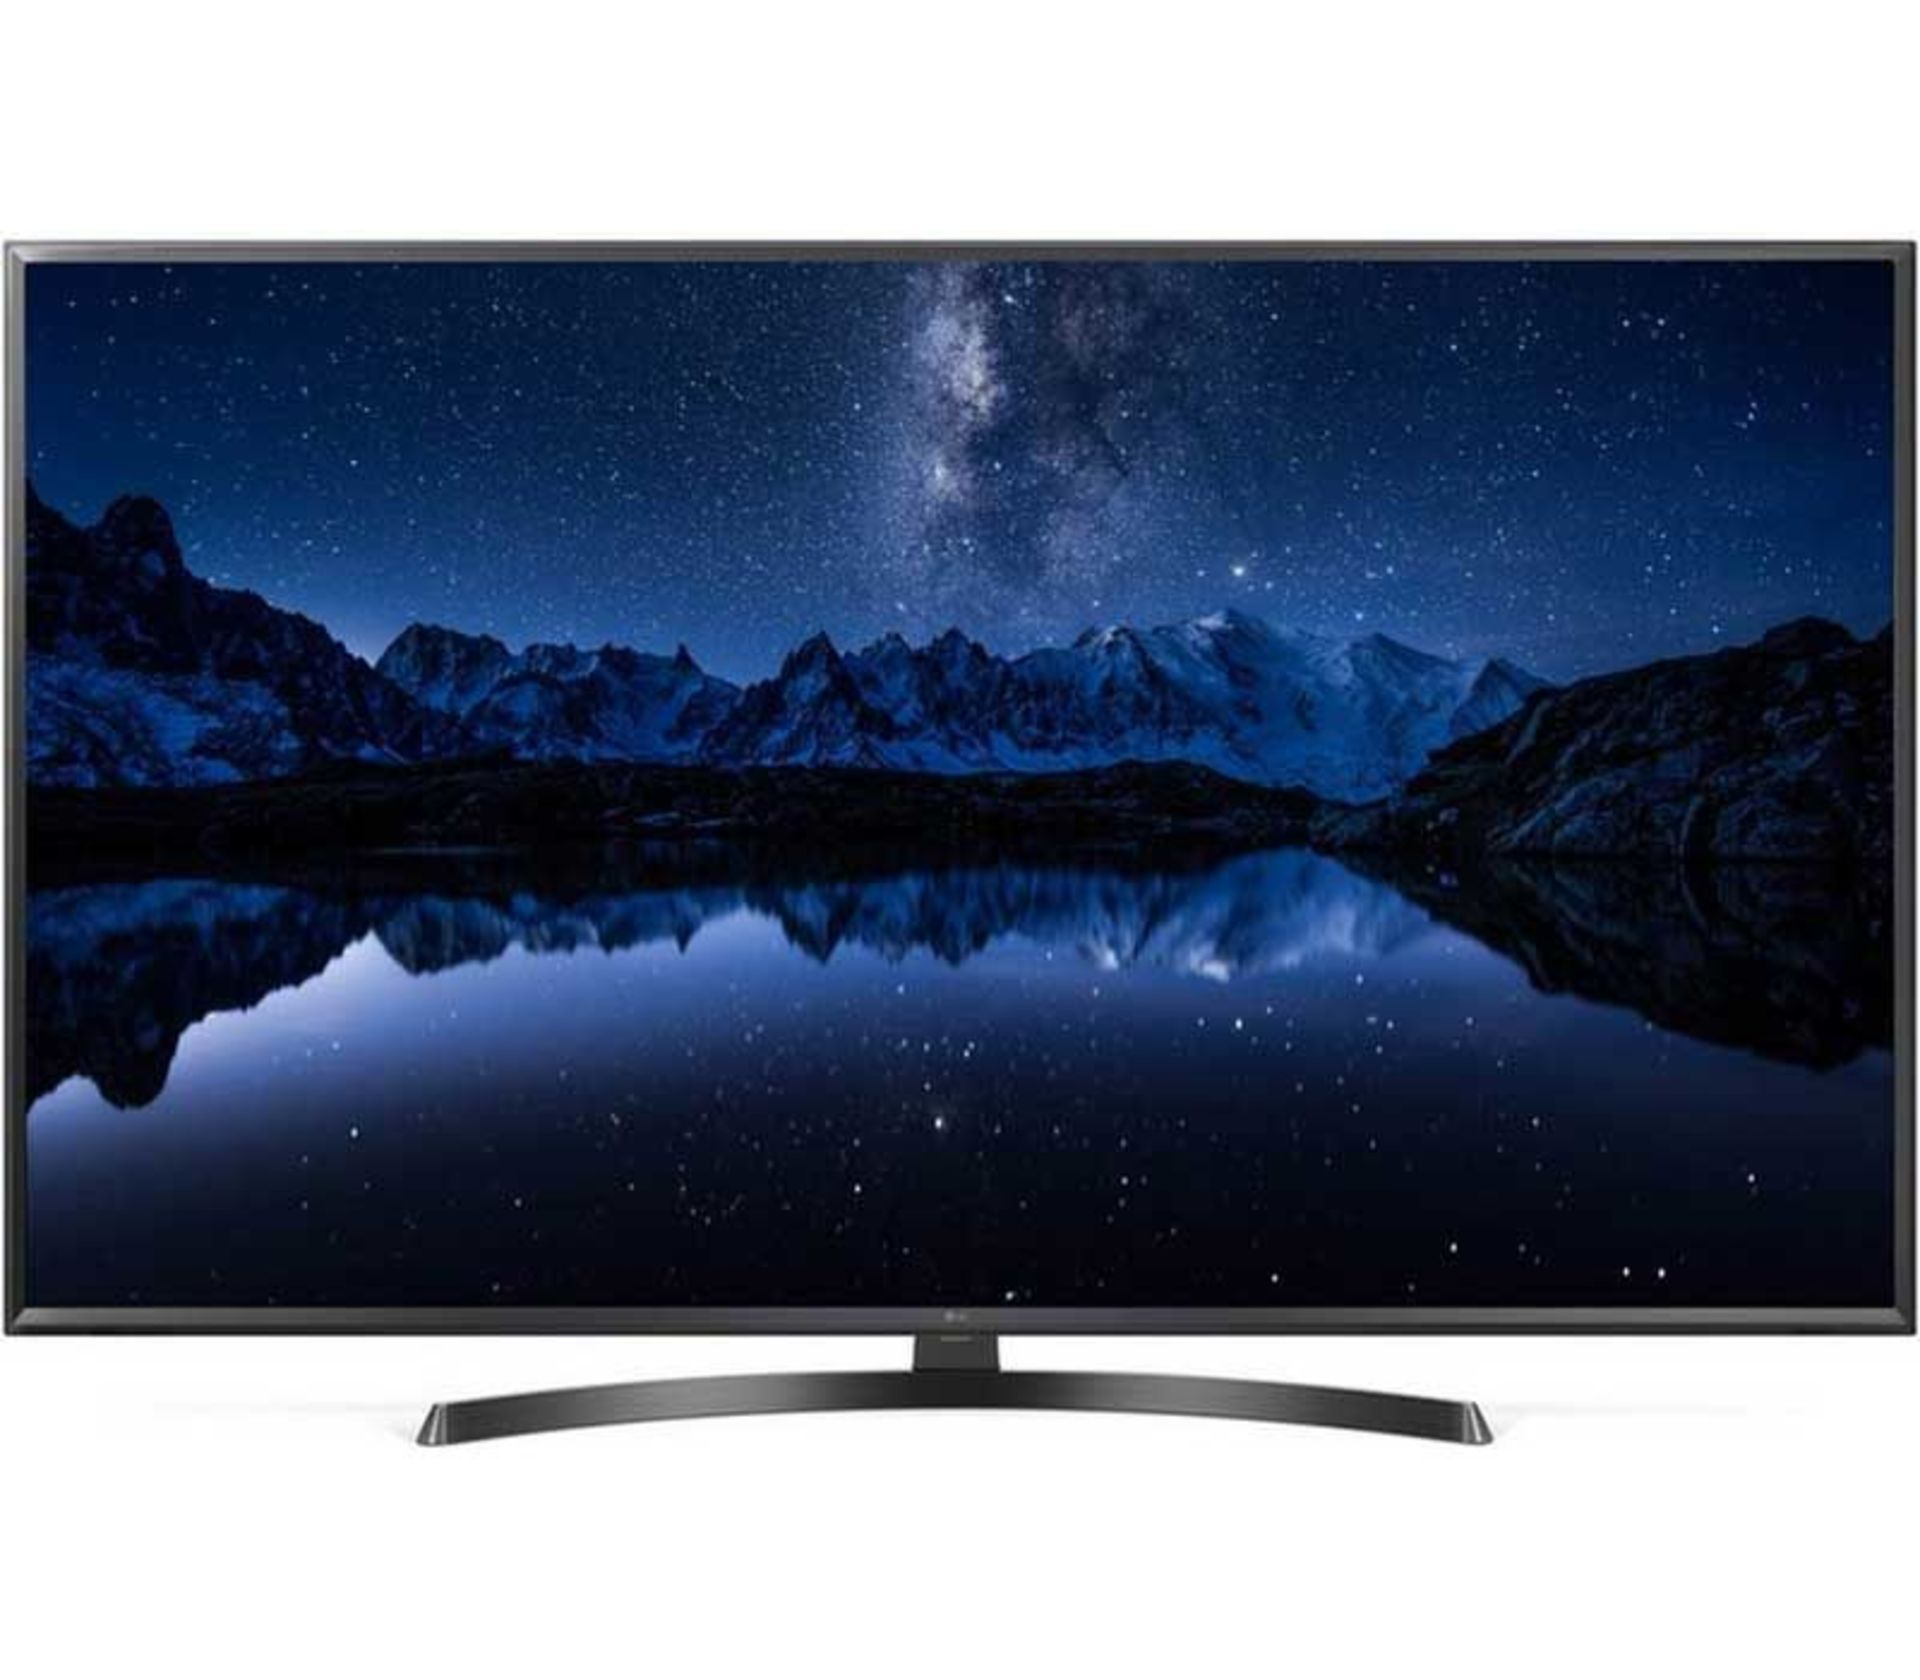 Lotto 30046 - V Grade A LG 43 Inch ACTIVE HDR 4K ULTRA HD LED SMART TV WITH FREEVIEW HD & WEBOS 4.0 & WIFI - AI TV